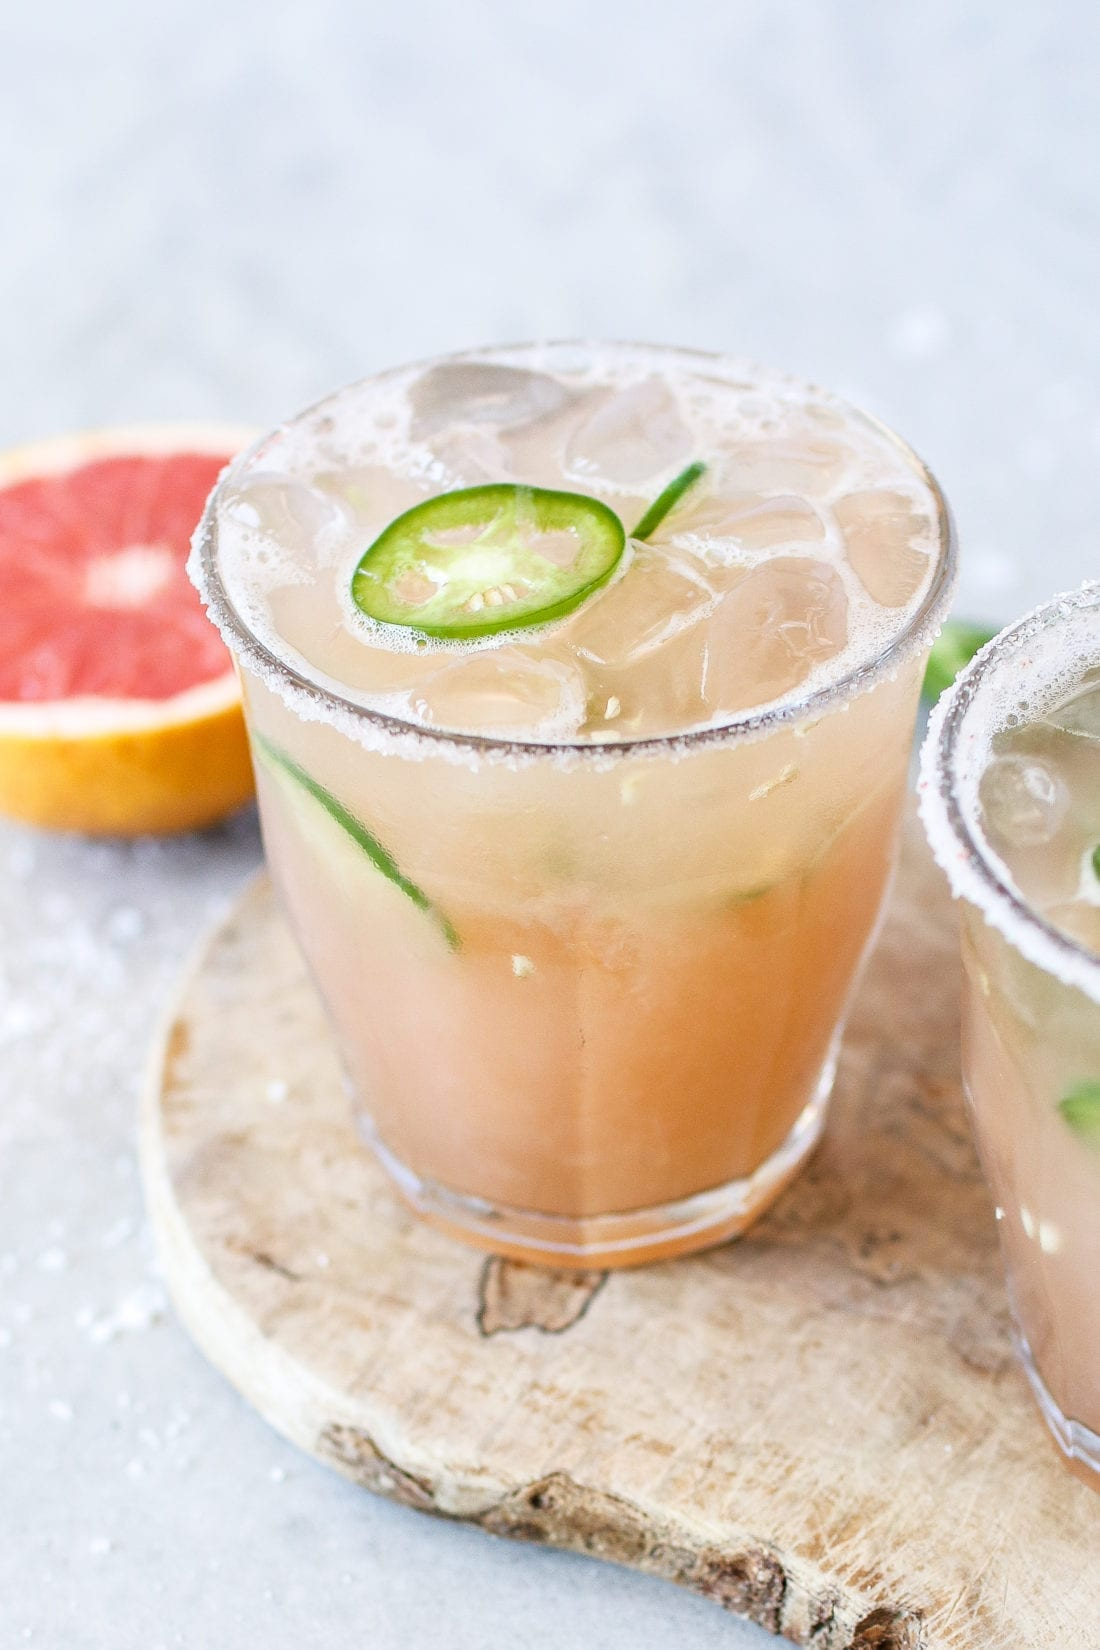 This Grapefruit Jalapeño Margarita is a refreshing cocktail made with fresh ingredients and just the right amount of spicy kick!